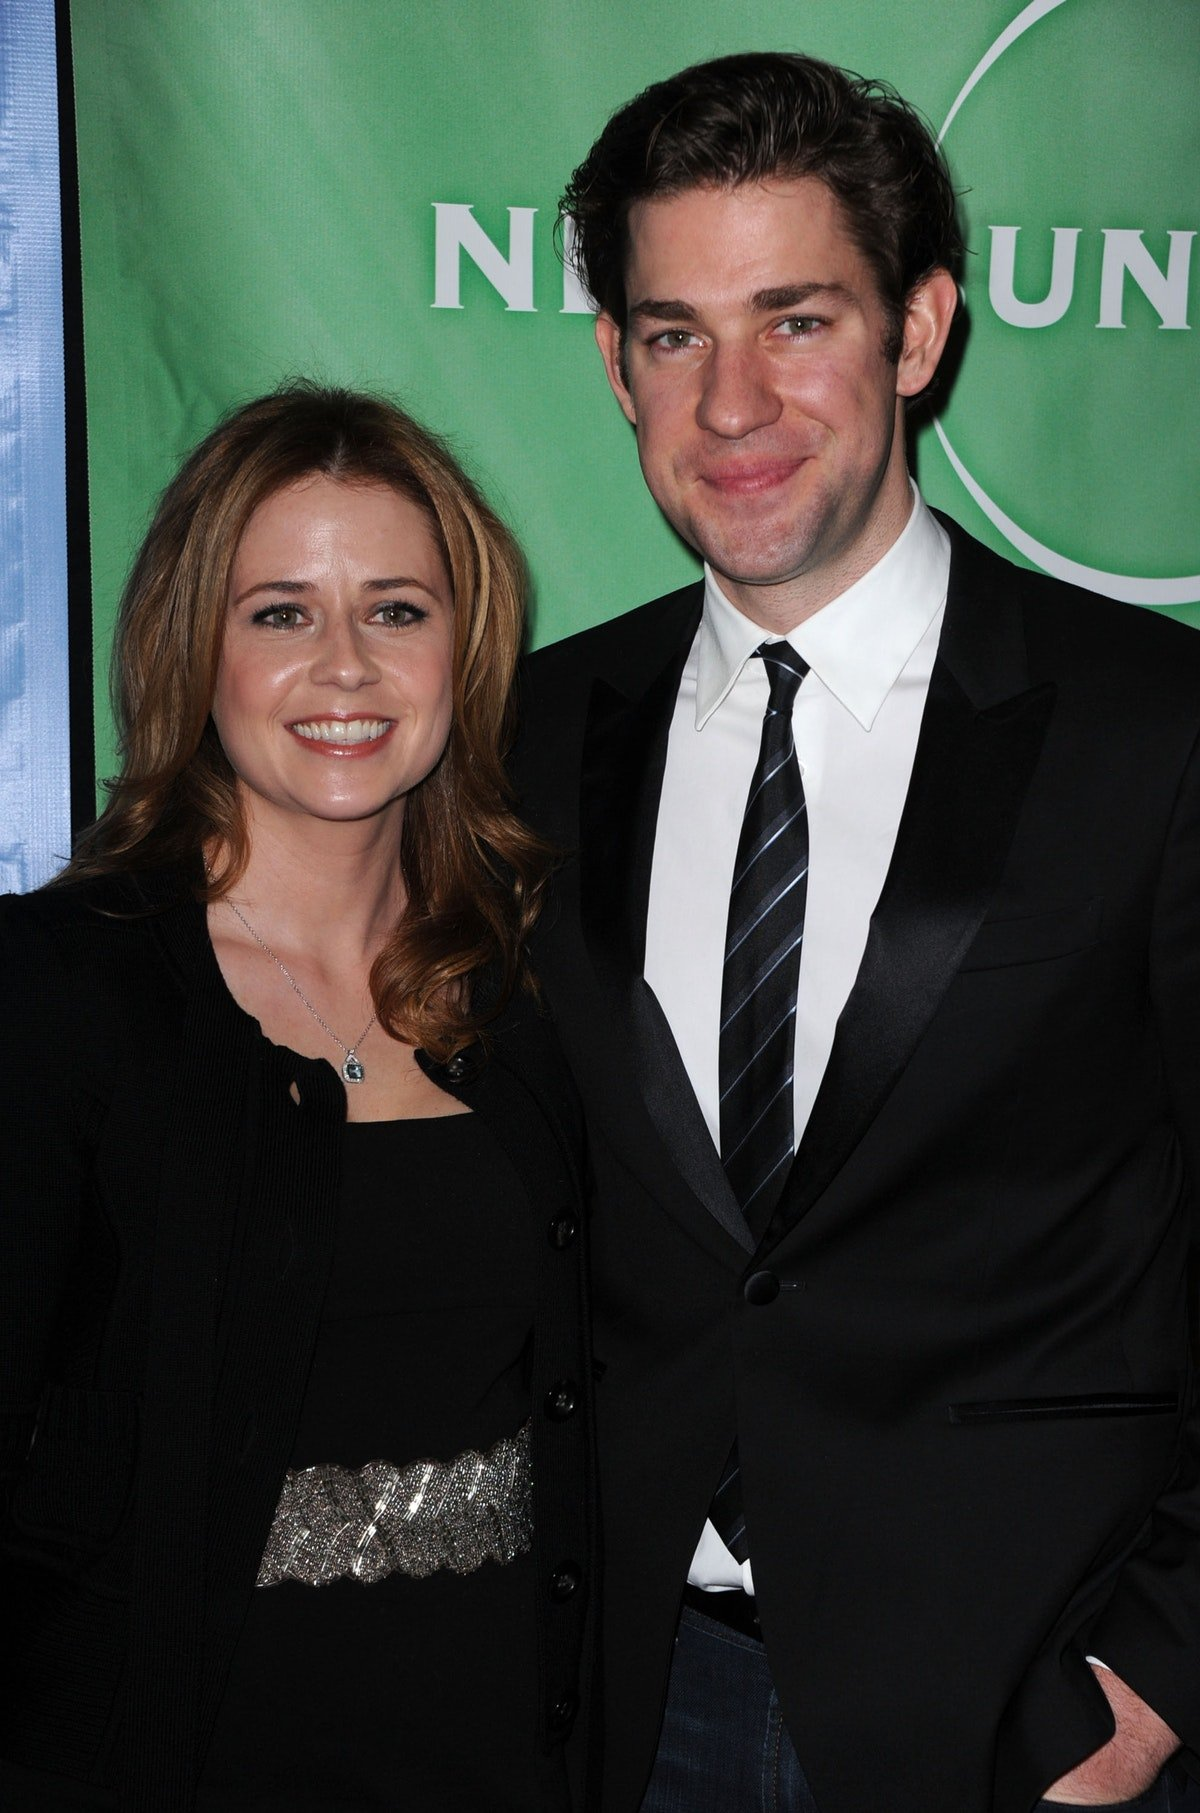 """Why Jenna Fischer Hasn't Seen 'A Quiet Place' Will Make 'The Office' Fans Say """"Aww"""""""